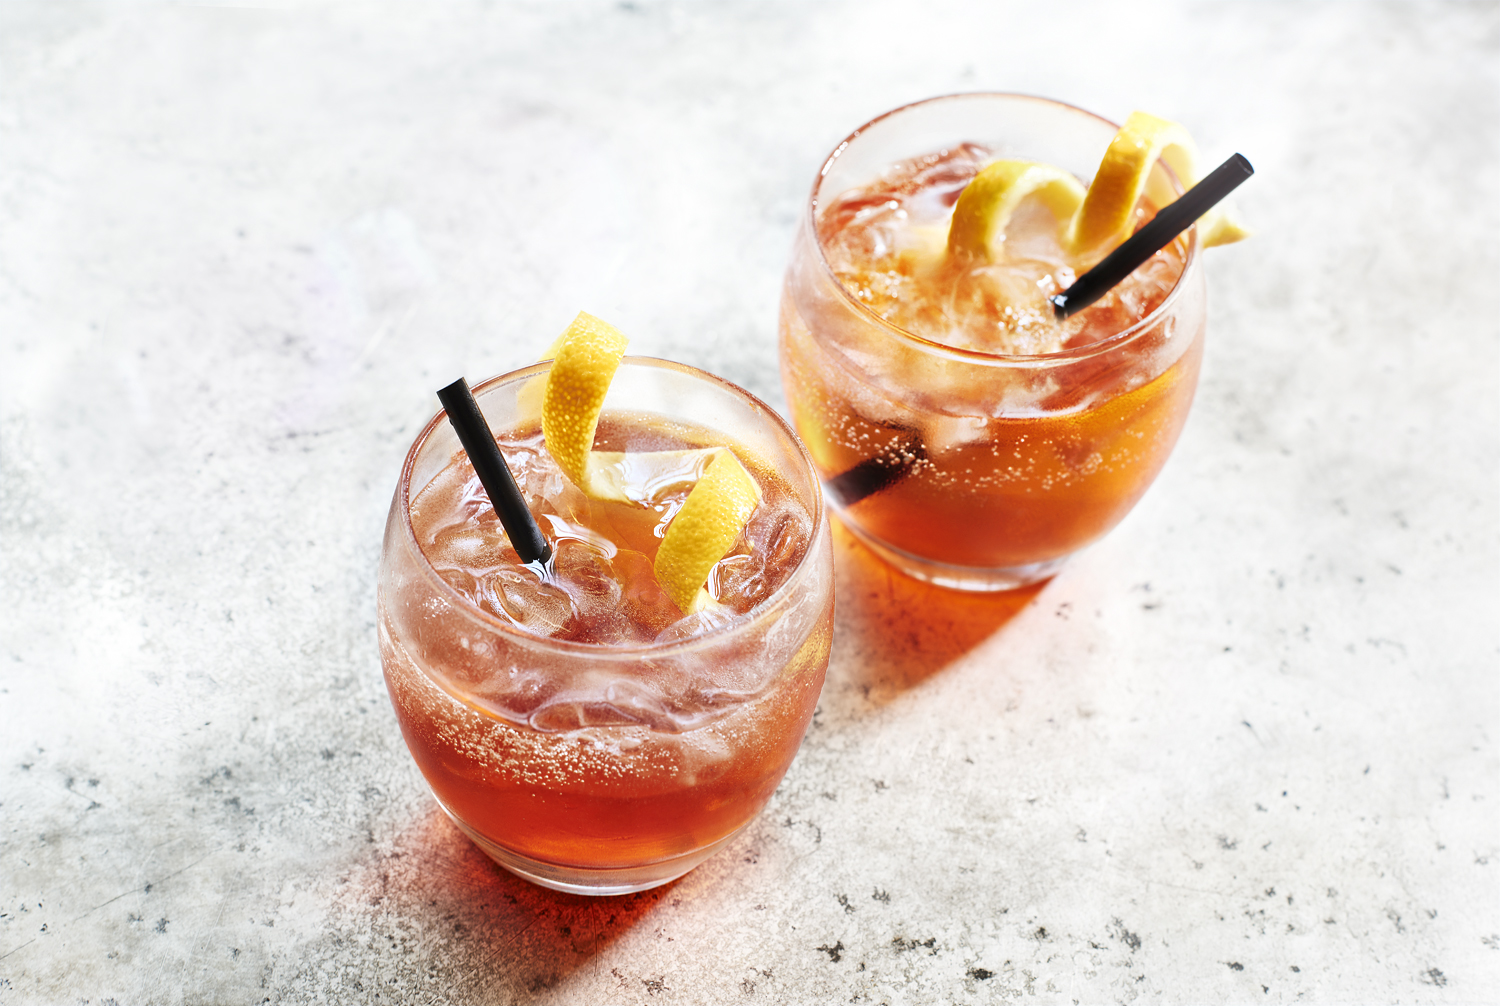 """Food Hall's cocktail recipe using campari, gin and prosecco for a Negroni Sbagliato. A translation literally meaning """"wrong negroni"""", so-called as the first one was made by a bartender in error when he reached for prosecco instead of gin when making a negroni. A Negroni Sbagliato traditionally leaves out the gin but we have thrown it in alongside for good measure. We end up with a less hardcore version of a negroni but a longer and more refreshing version."""